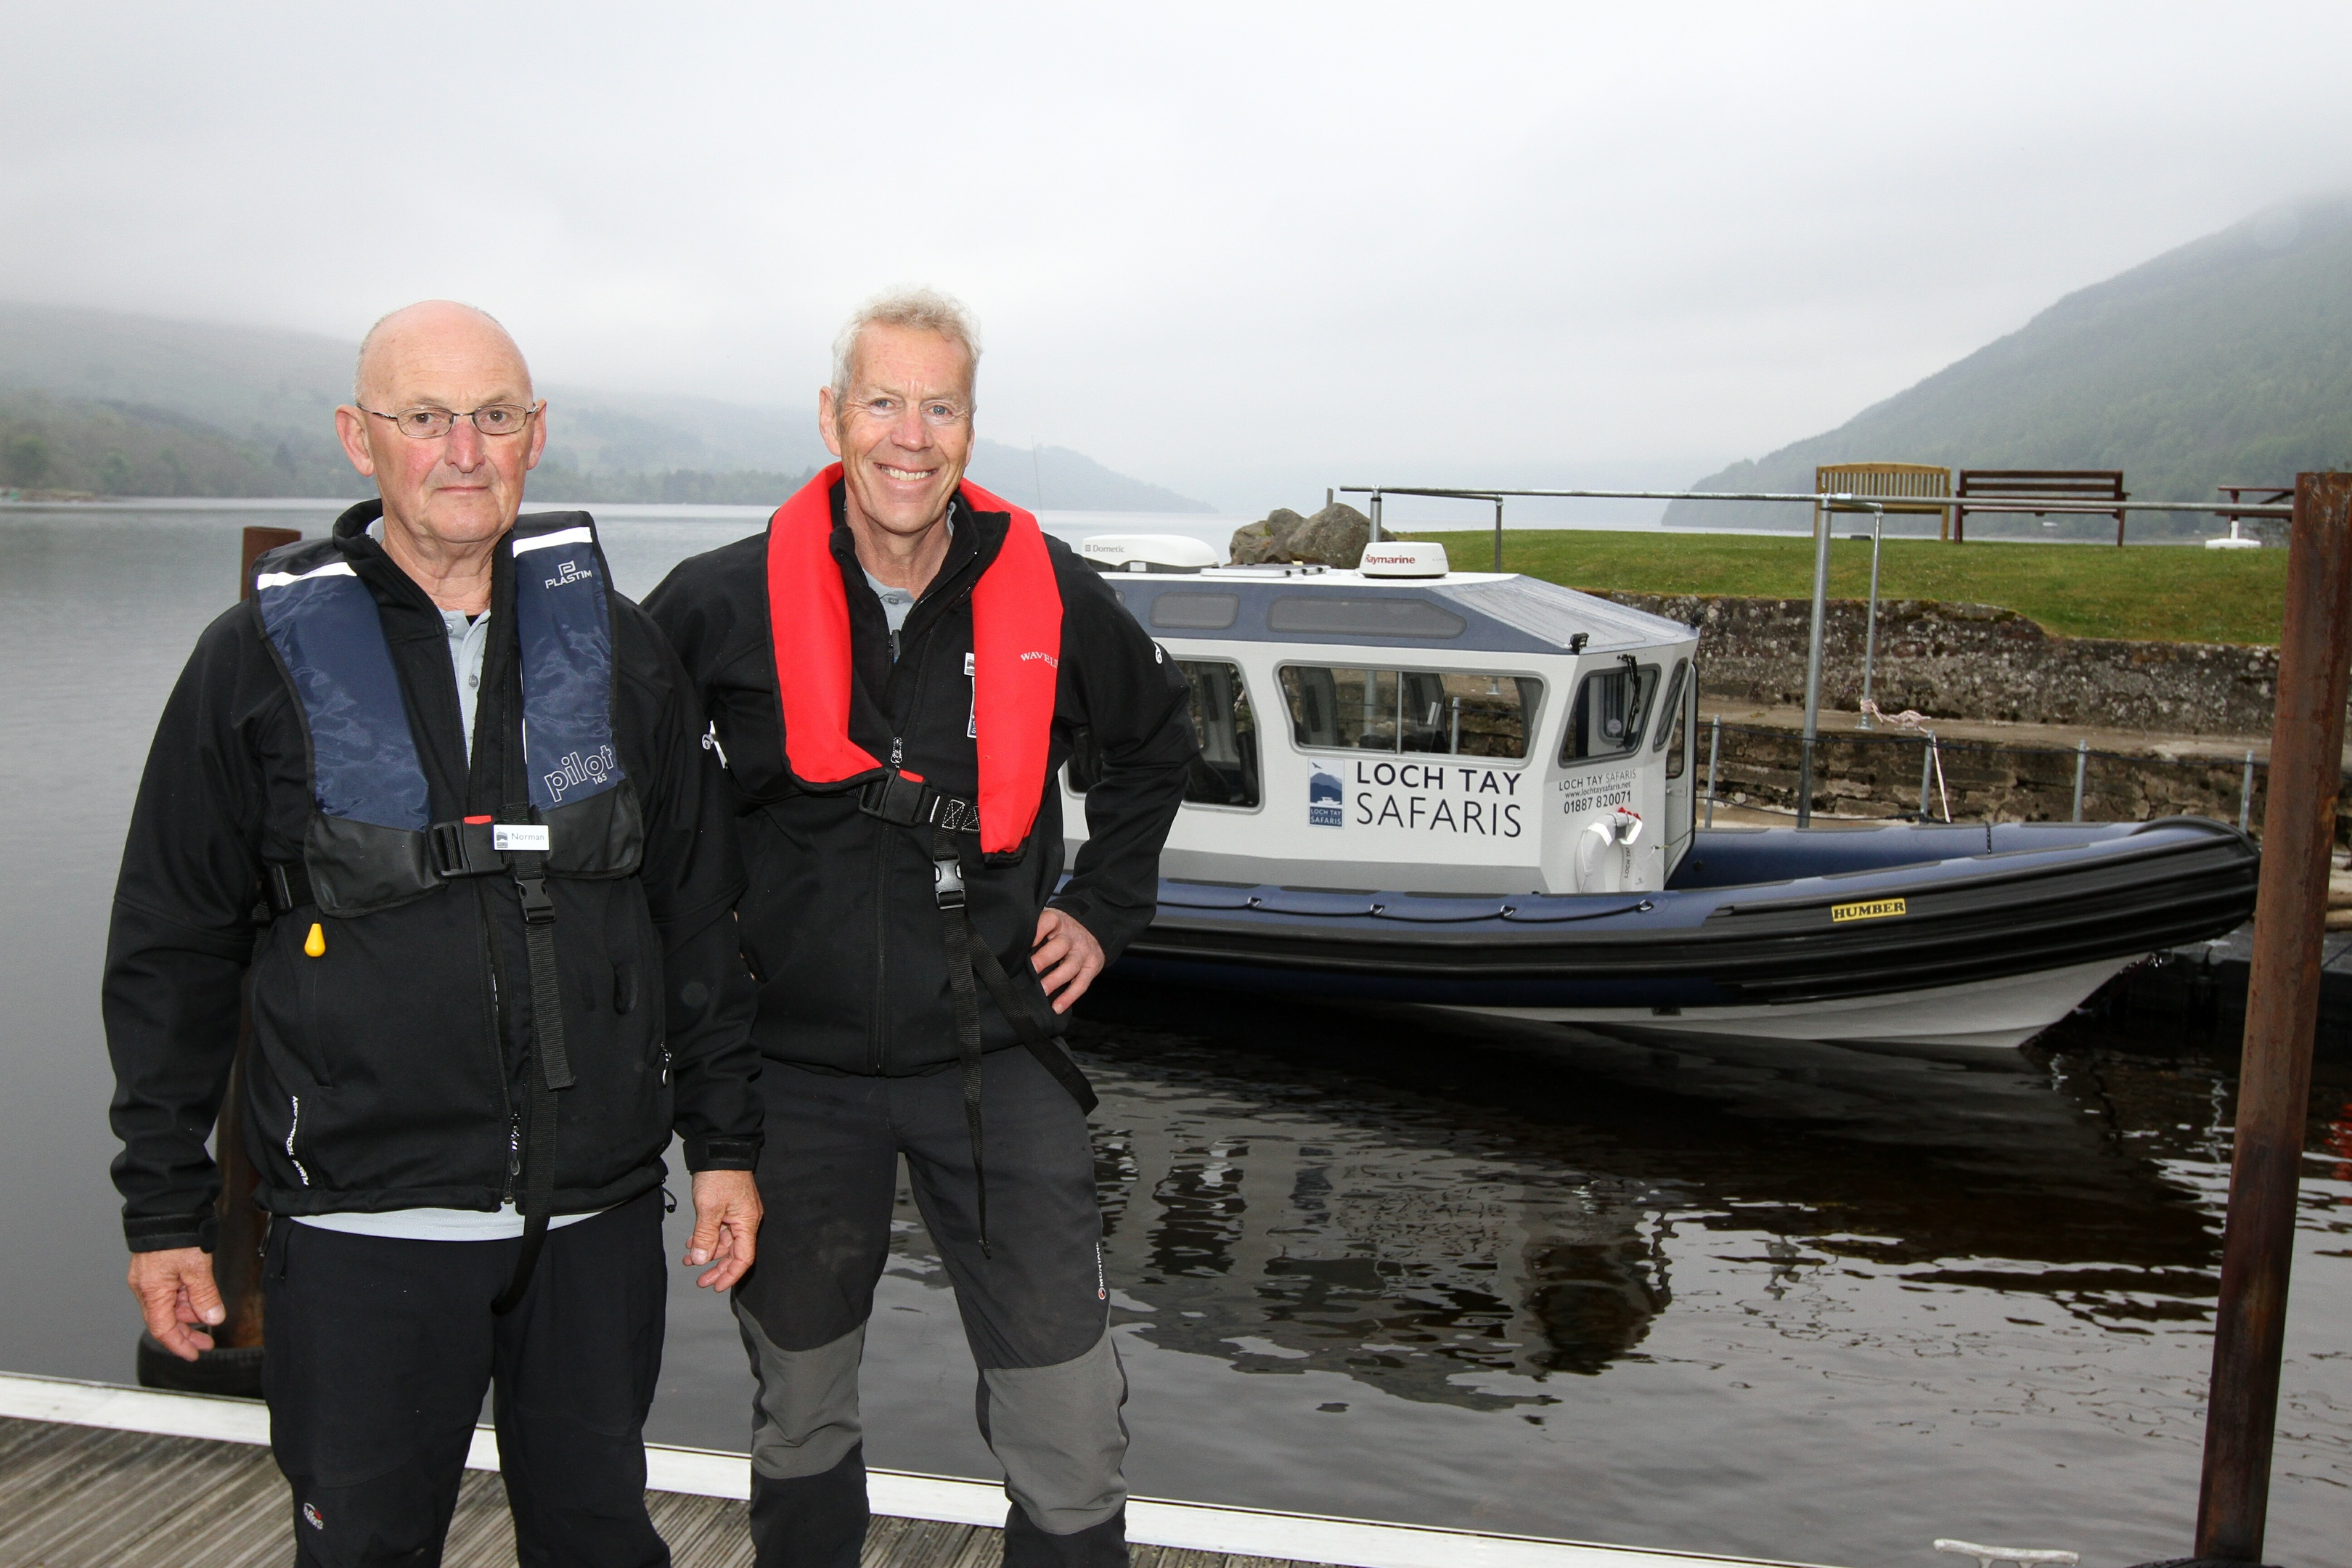 Norman Brett and owner Donald Riddell  on the boat on the loch.